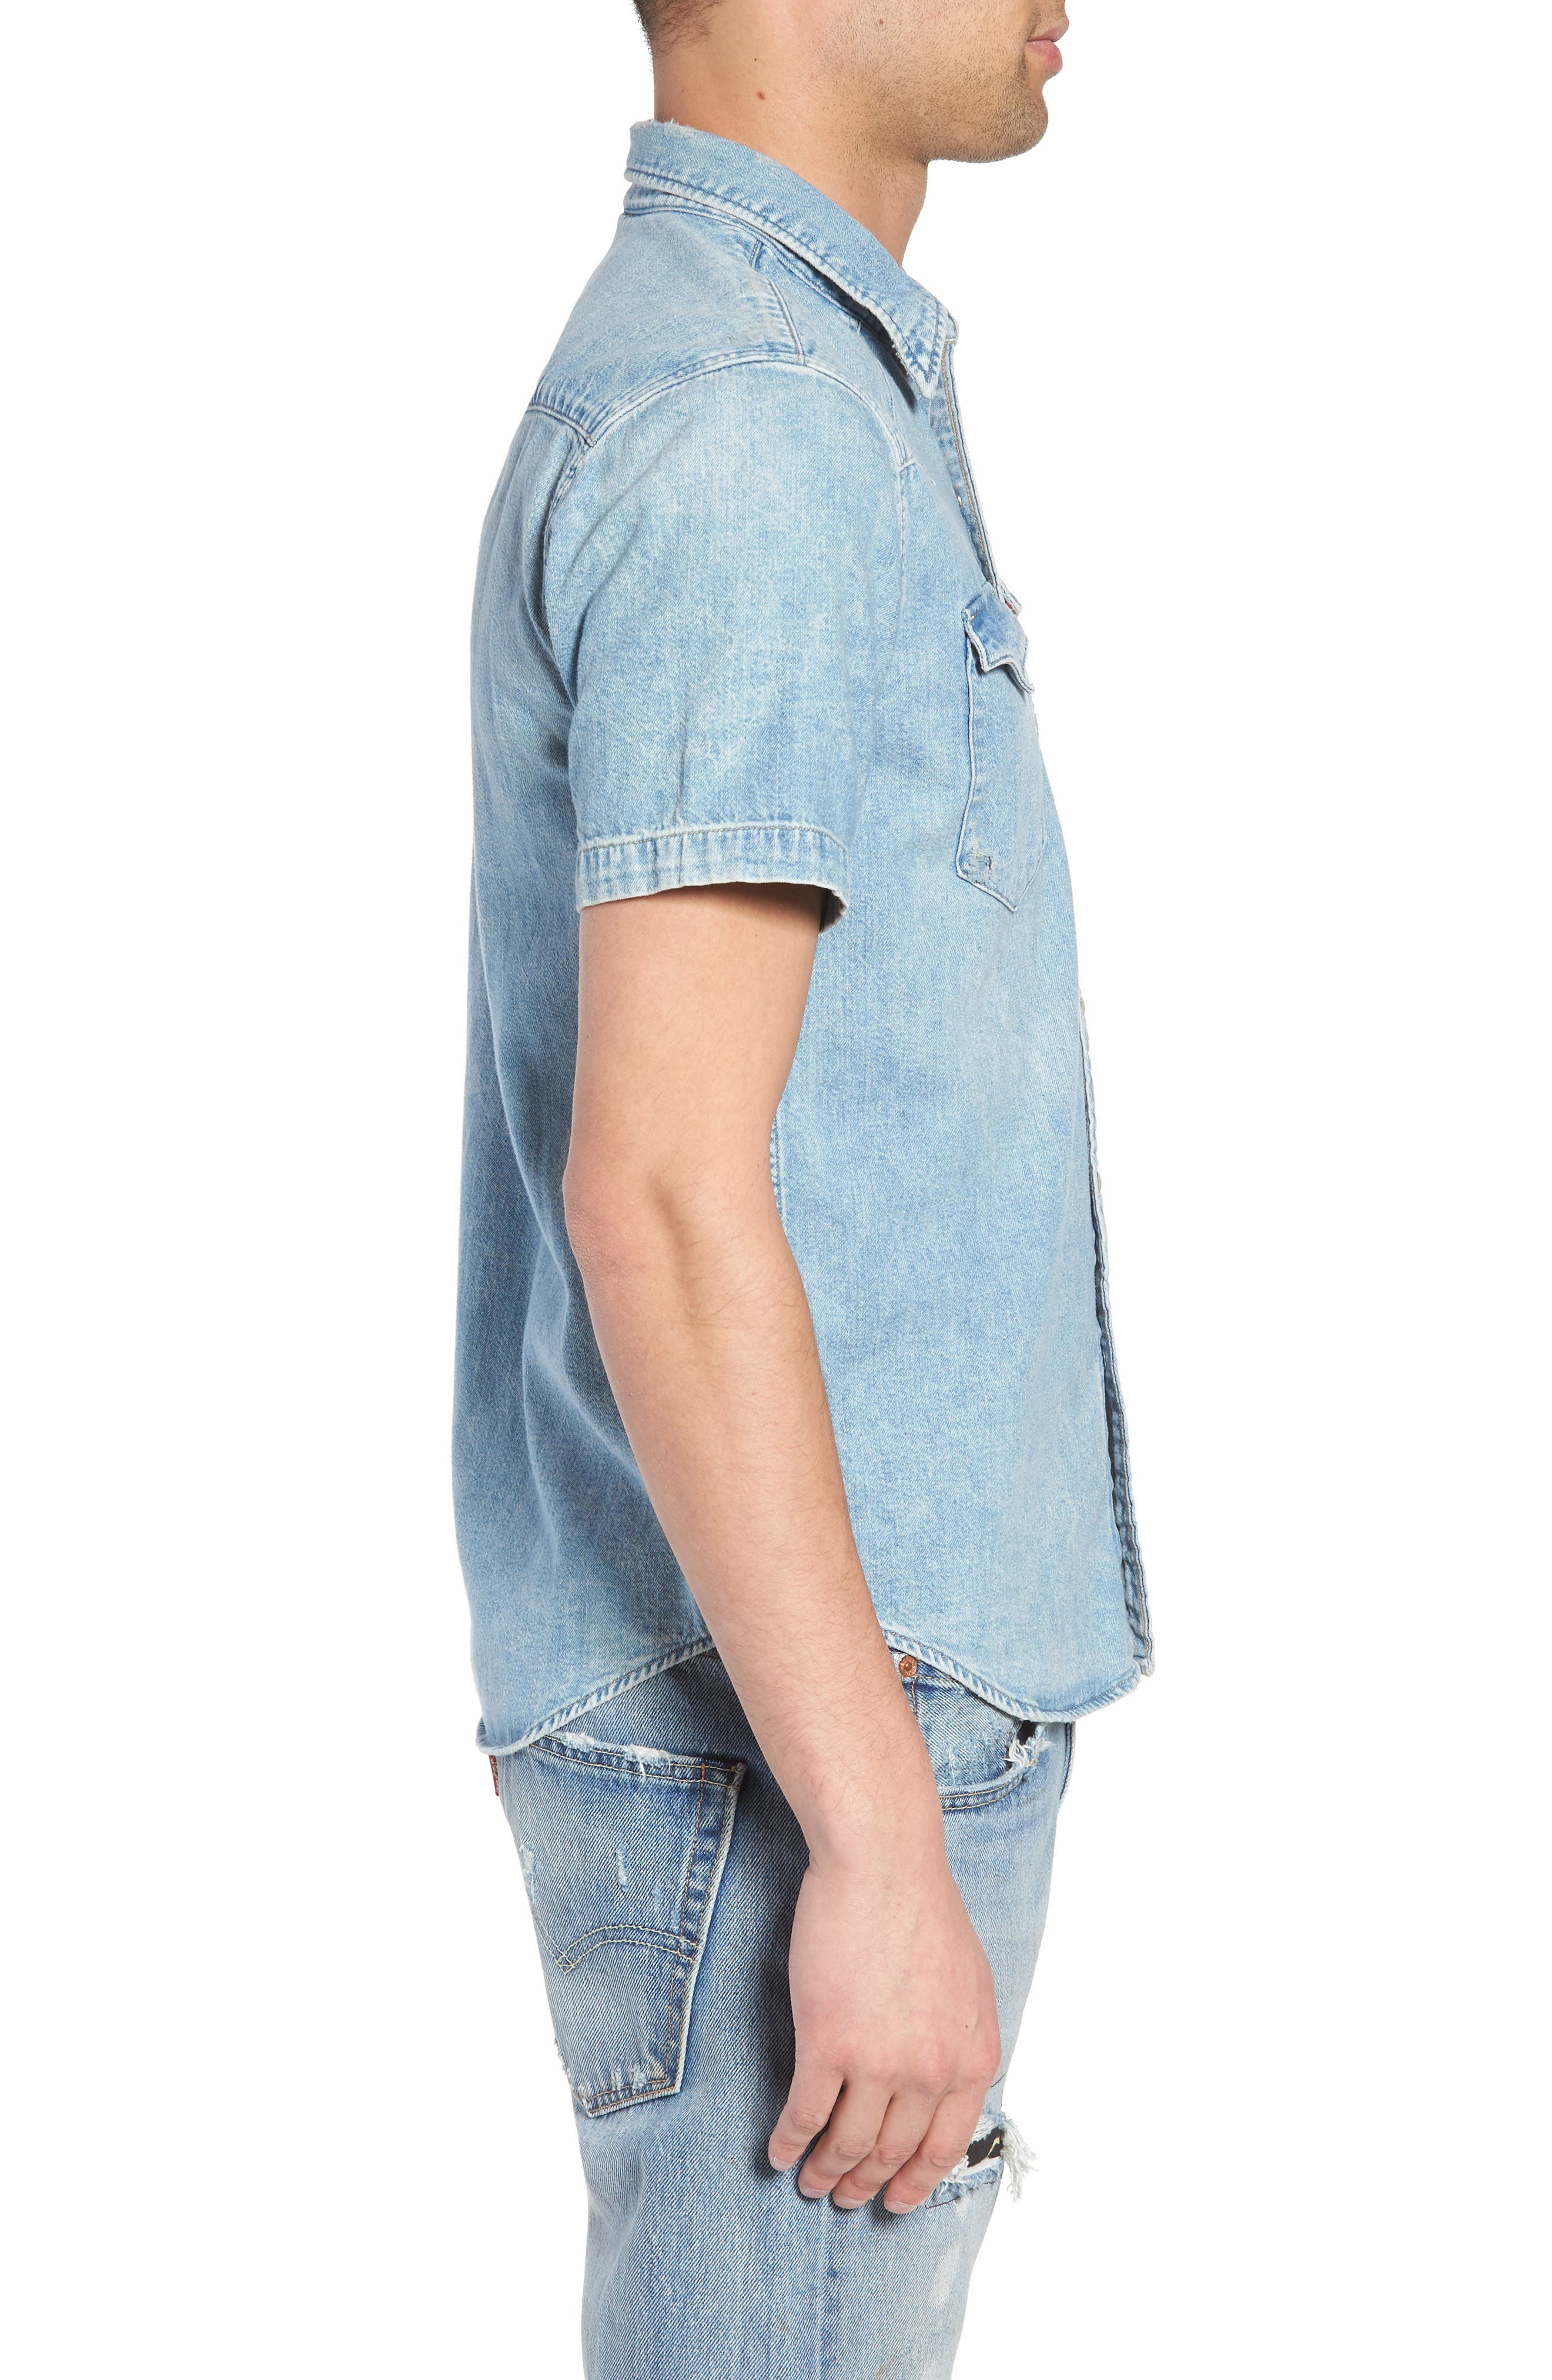 Barstow Western Shirt,                             Alternate thumbnail 4, color,                             Light Weight Marbled Denim